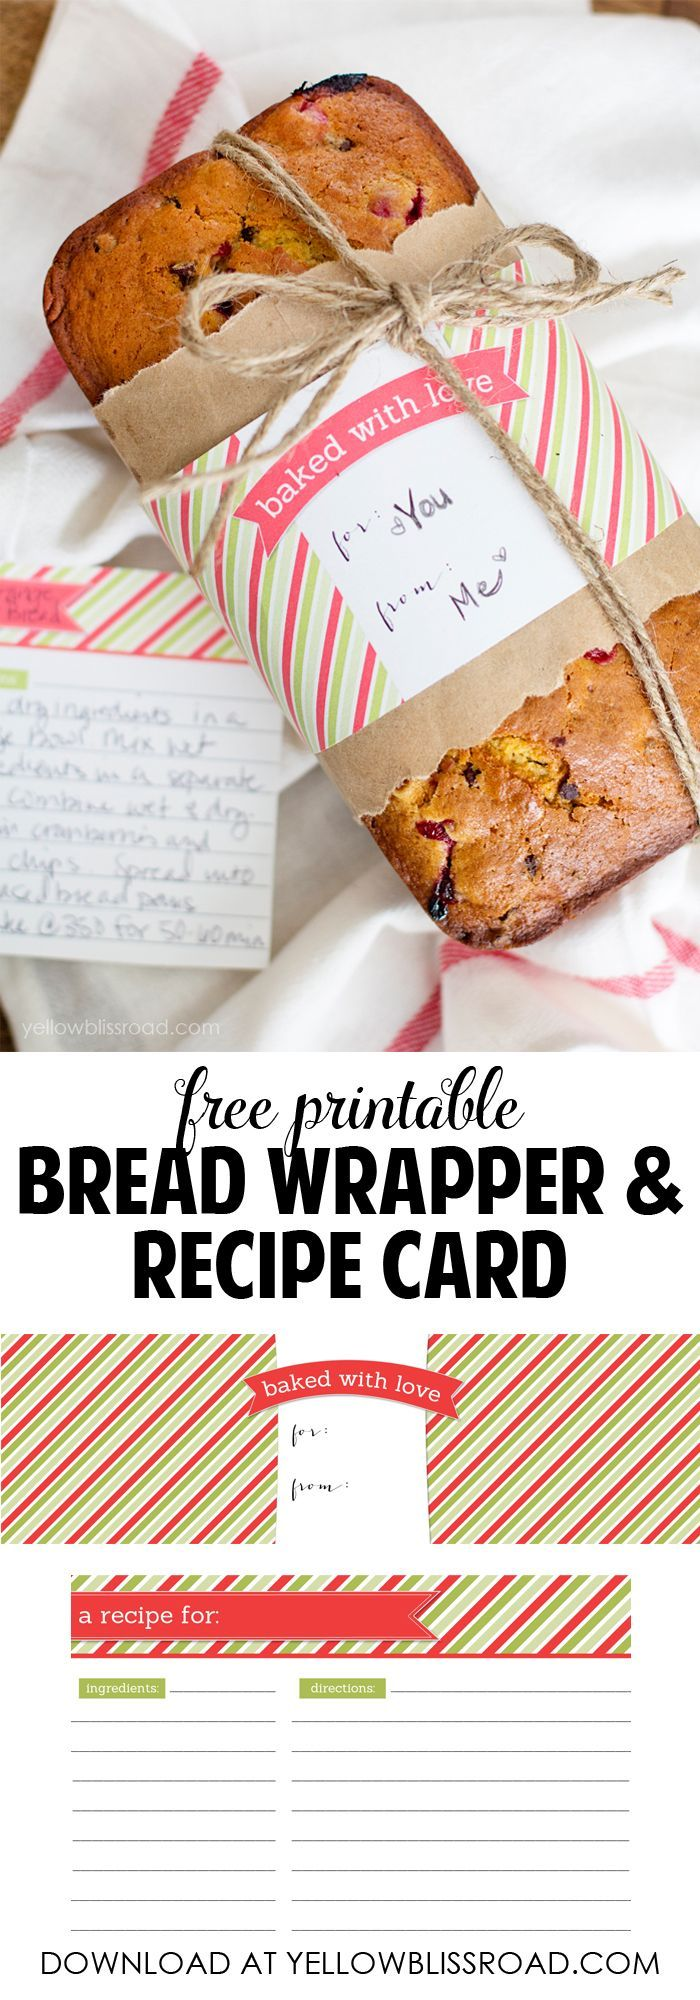 Gift wrapping ideas for home made baked goods - Christmas Printable Diy Gift Idea Quick Bread Recipesgift Wrapperhomemade